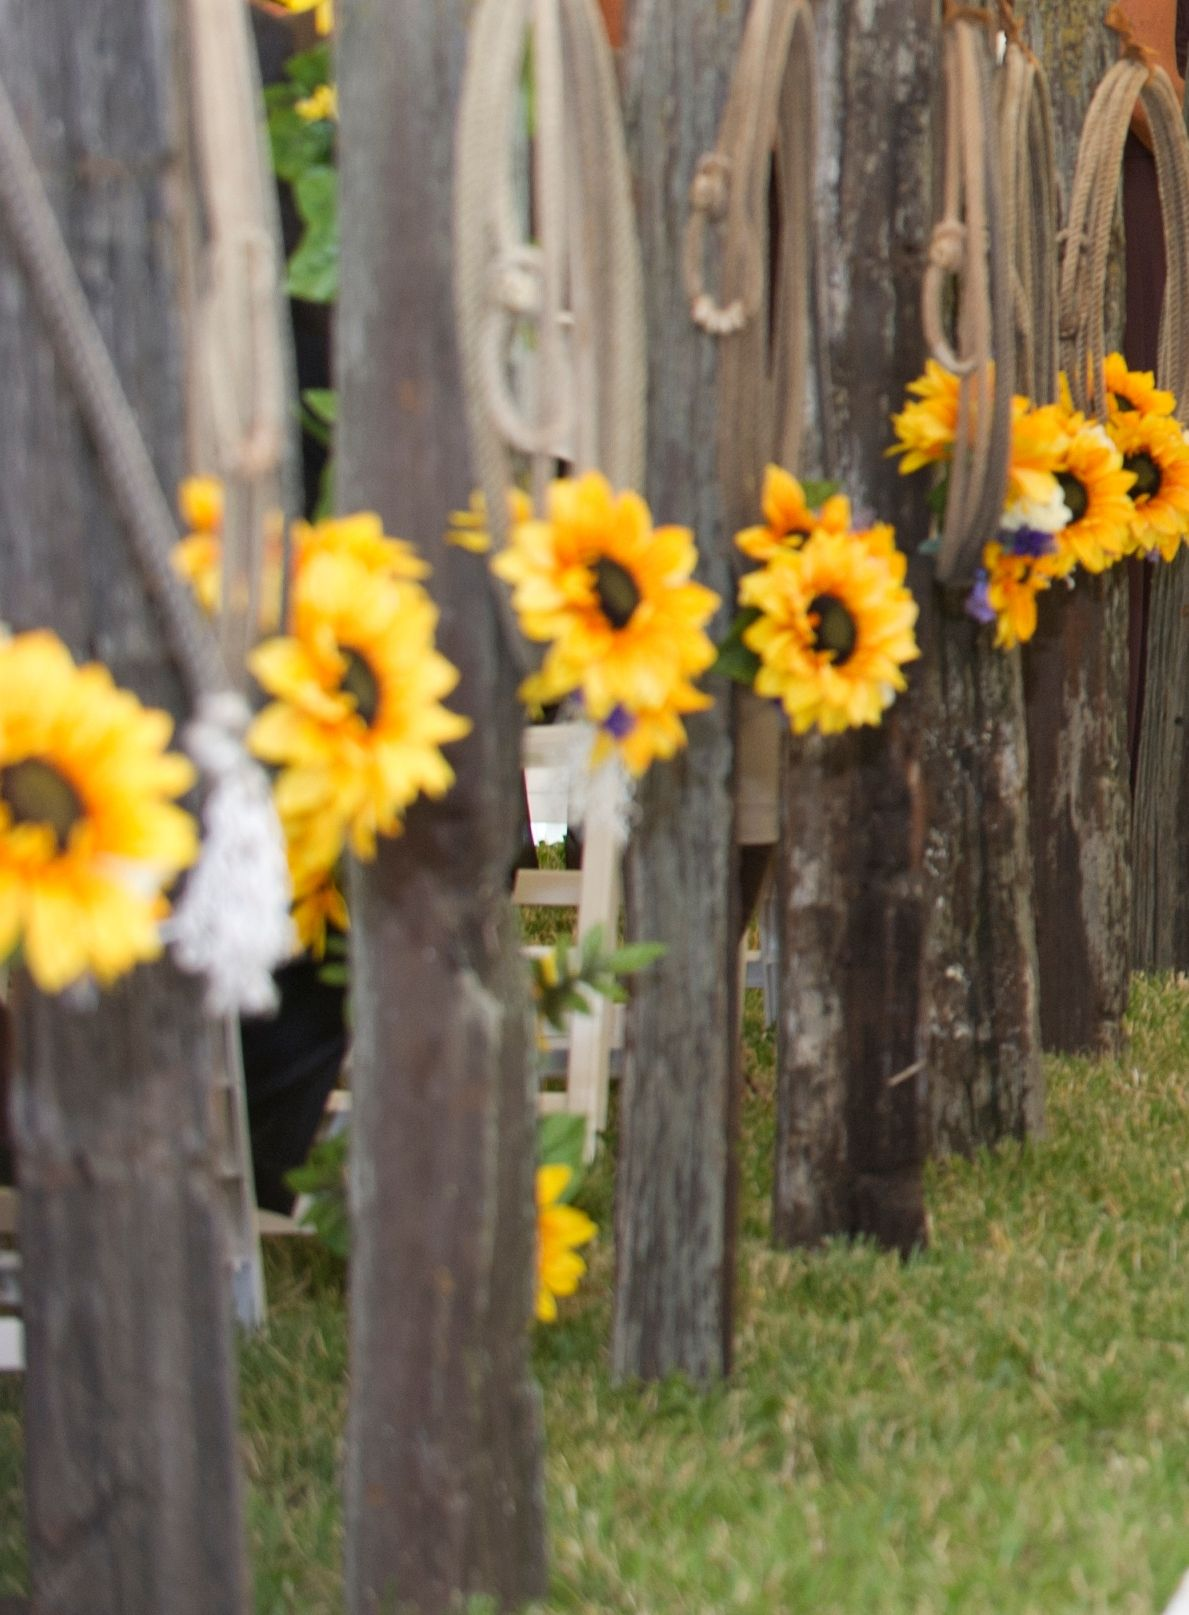 Old Wood Post With Horse Shoe Feet Decorated With Ropes Sunflowers And Ribbon For Aisle At A Pretty Wedding Ceremony Wedding Ceremony Flowers Ceremony Flowers